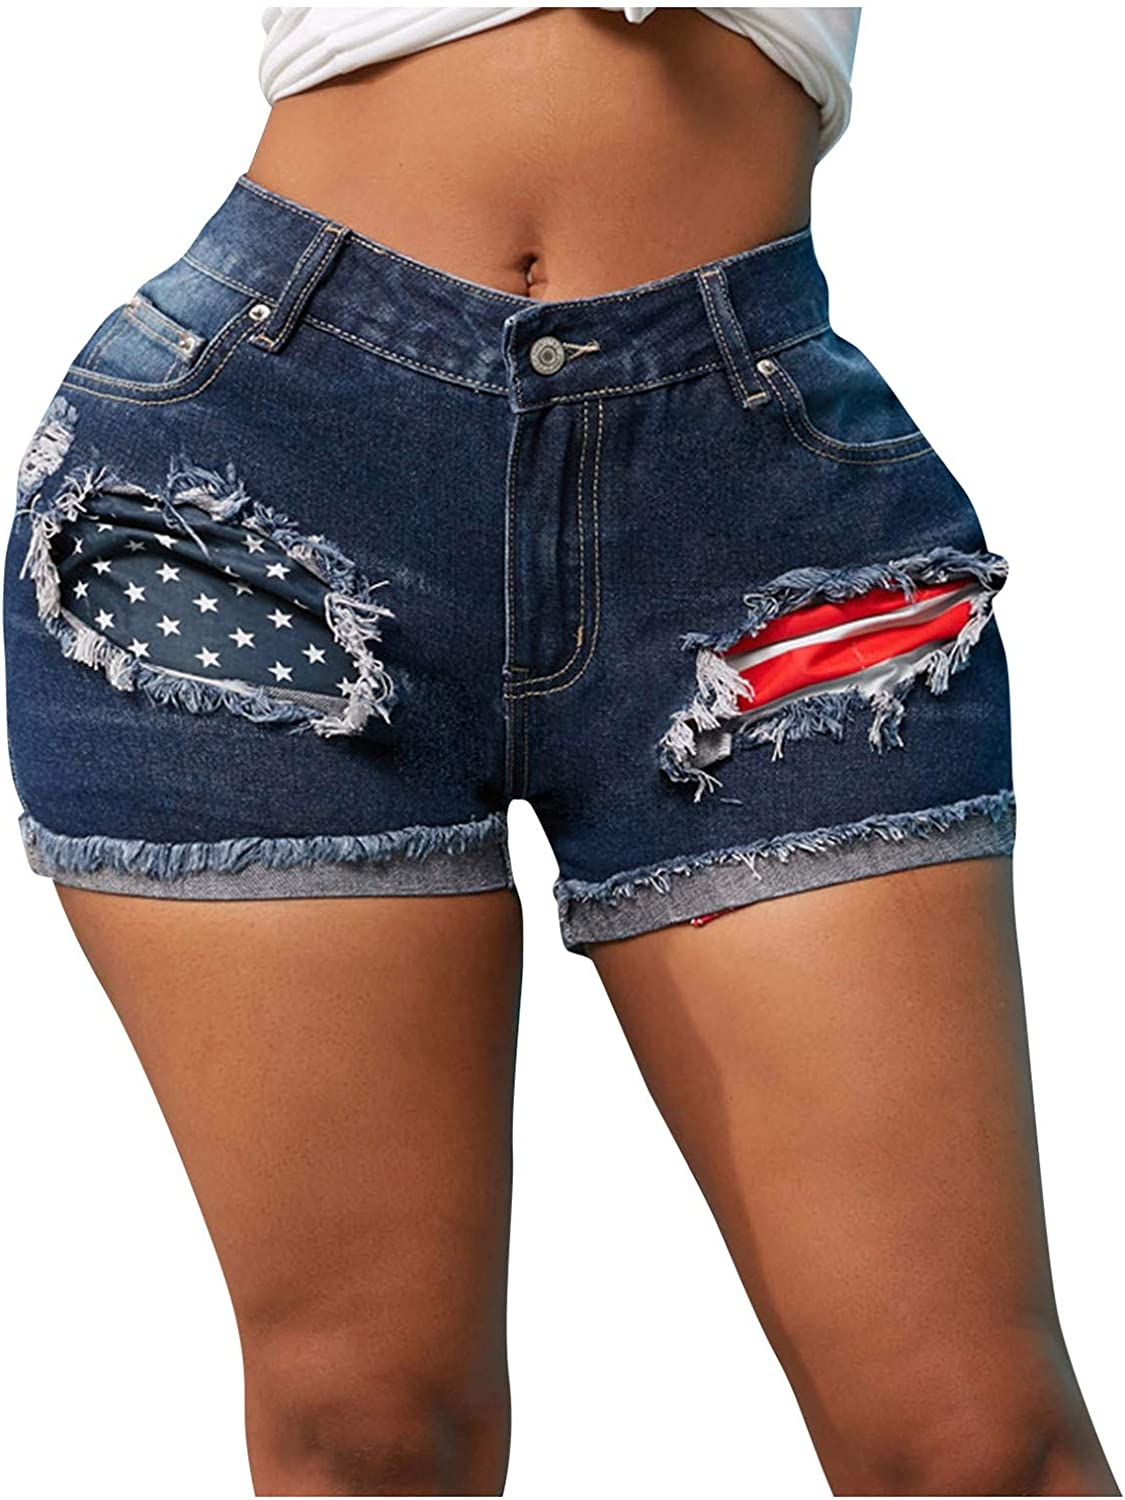 HENAA Denim Shorts for Women High Waisted Skinny Push Up Butt Lifting Frayed Raw Hem with US Flag Patch